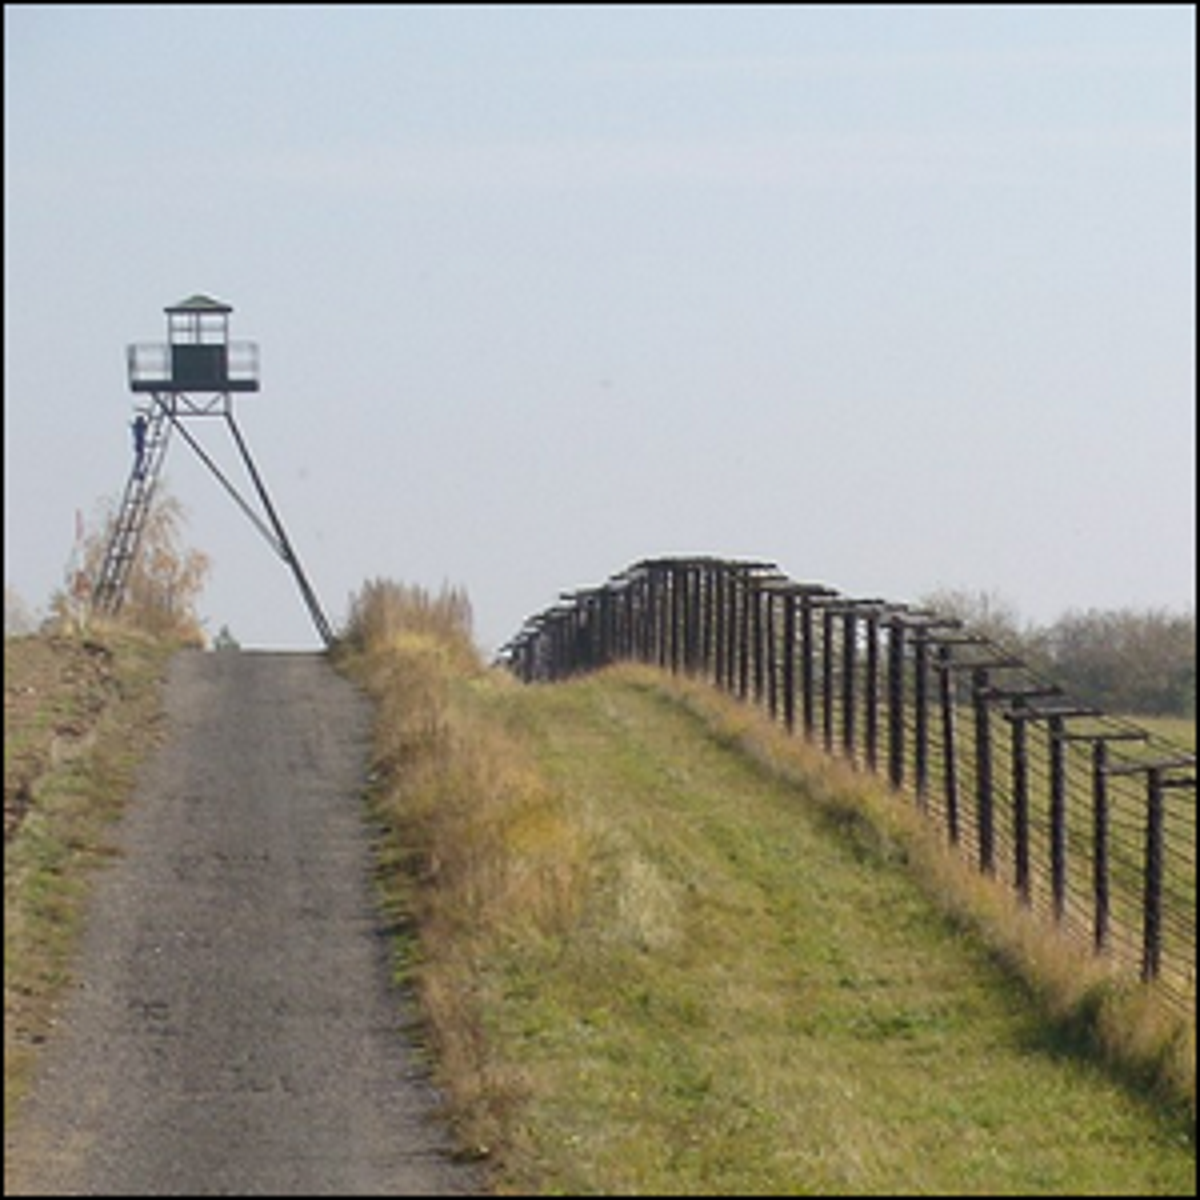 A section of the old Iron Curtain border fortification near Cizov (Horni Breckov) in the Czech Republic.